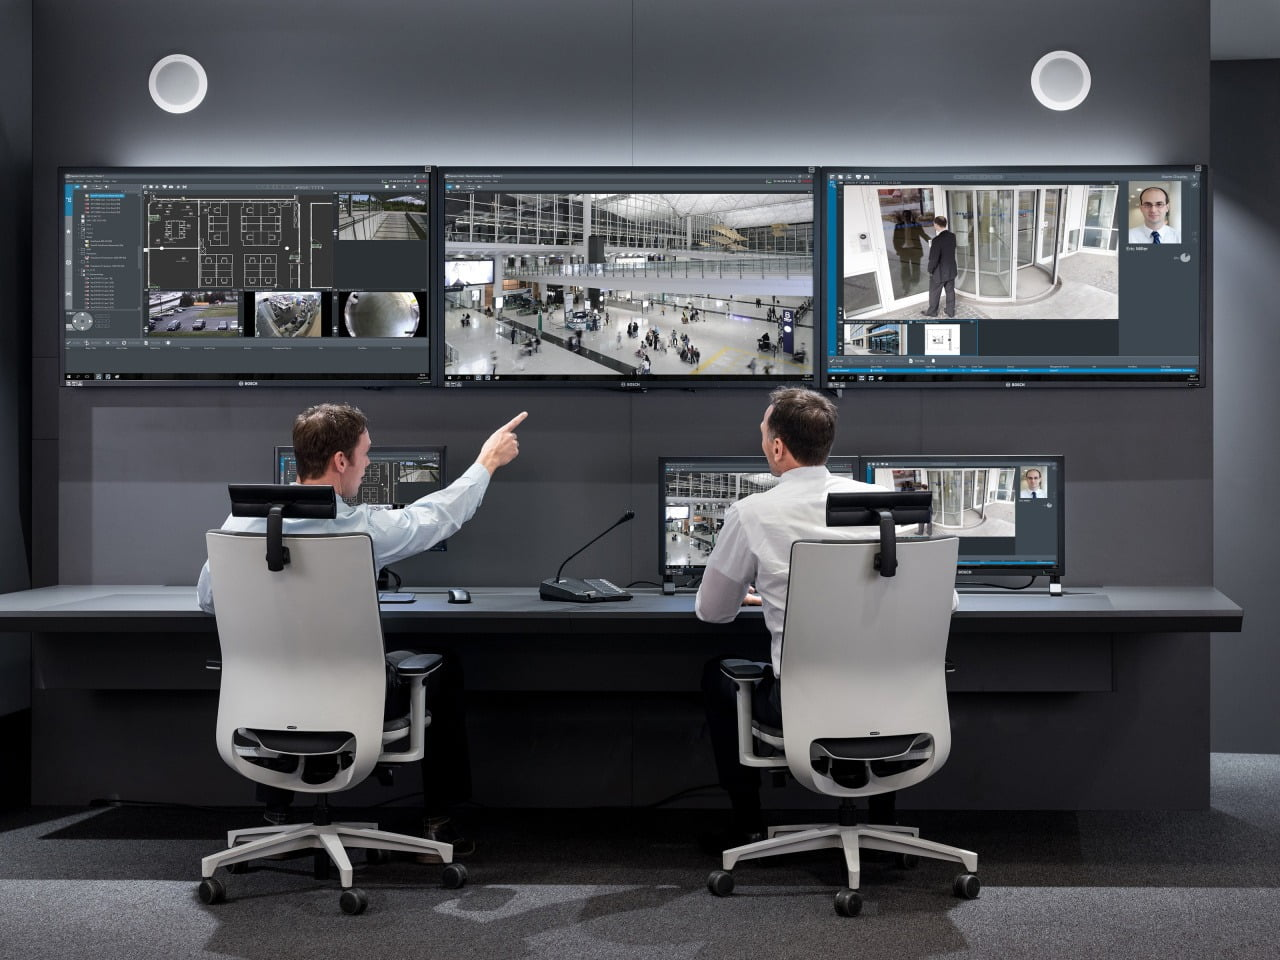 In recent years Bosch notes more users have been asking for solutions to solve security and business issues that require systems to work together. Integrating these systems can help to streamline operations to improve efficiency, protect high security areas and high-value assets, and keep operators and building occupants better informed.